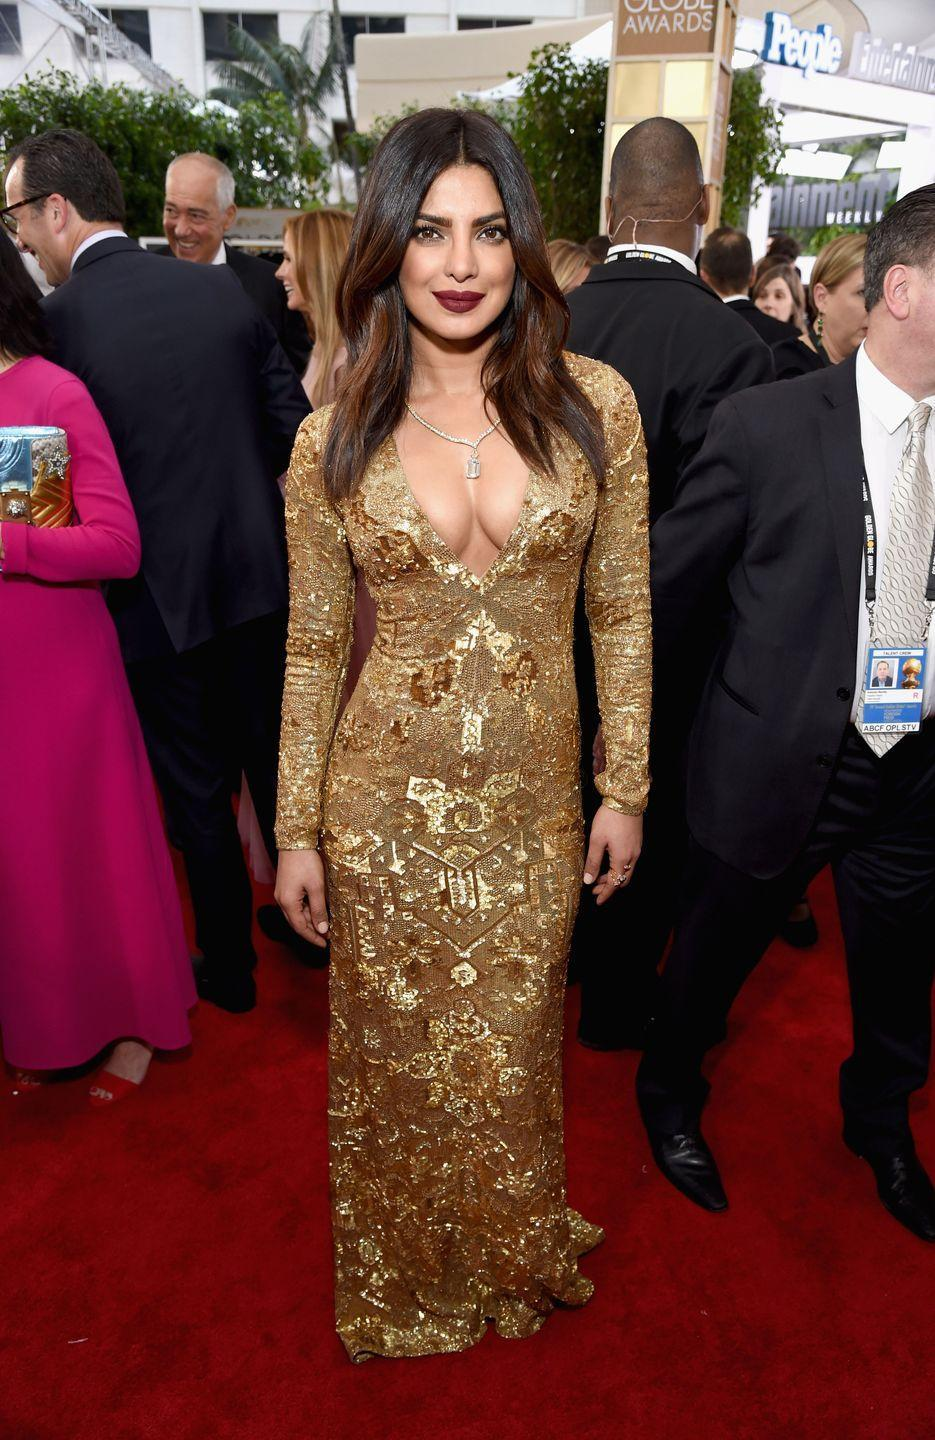 <p>An ornate Ralph Lauren gown with plunging neckline was perfection for Chopra's Golden Globes debut in 2017.</p>